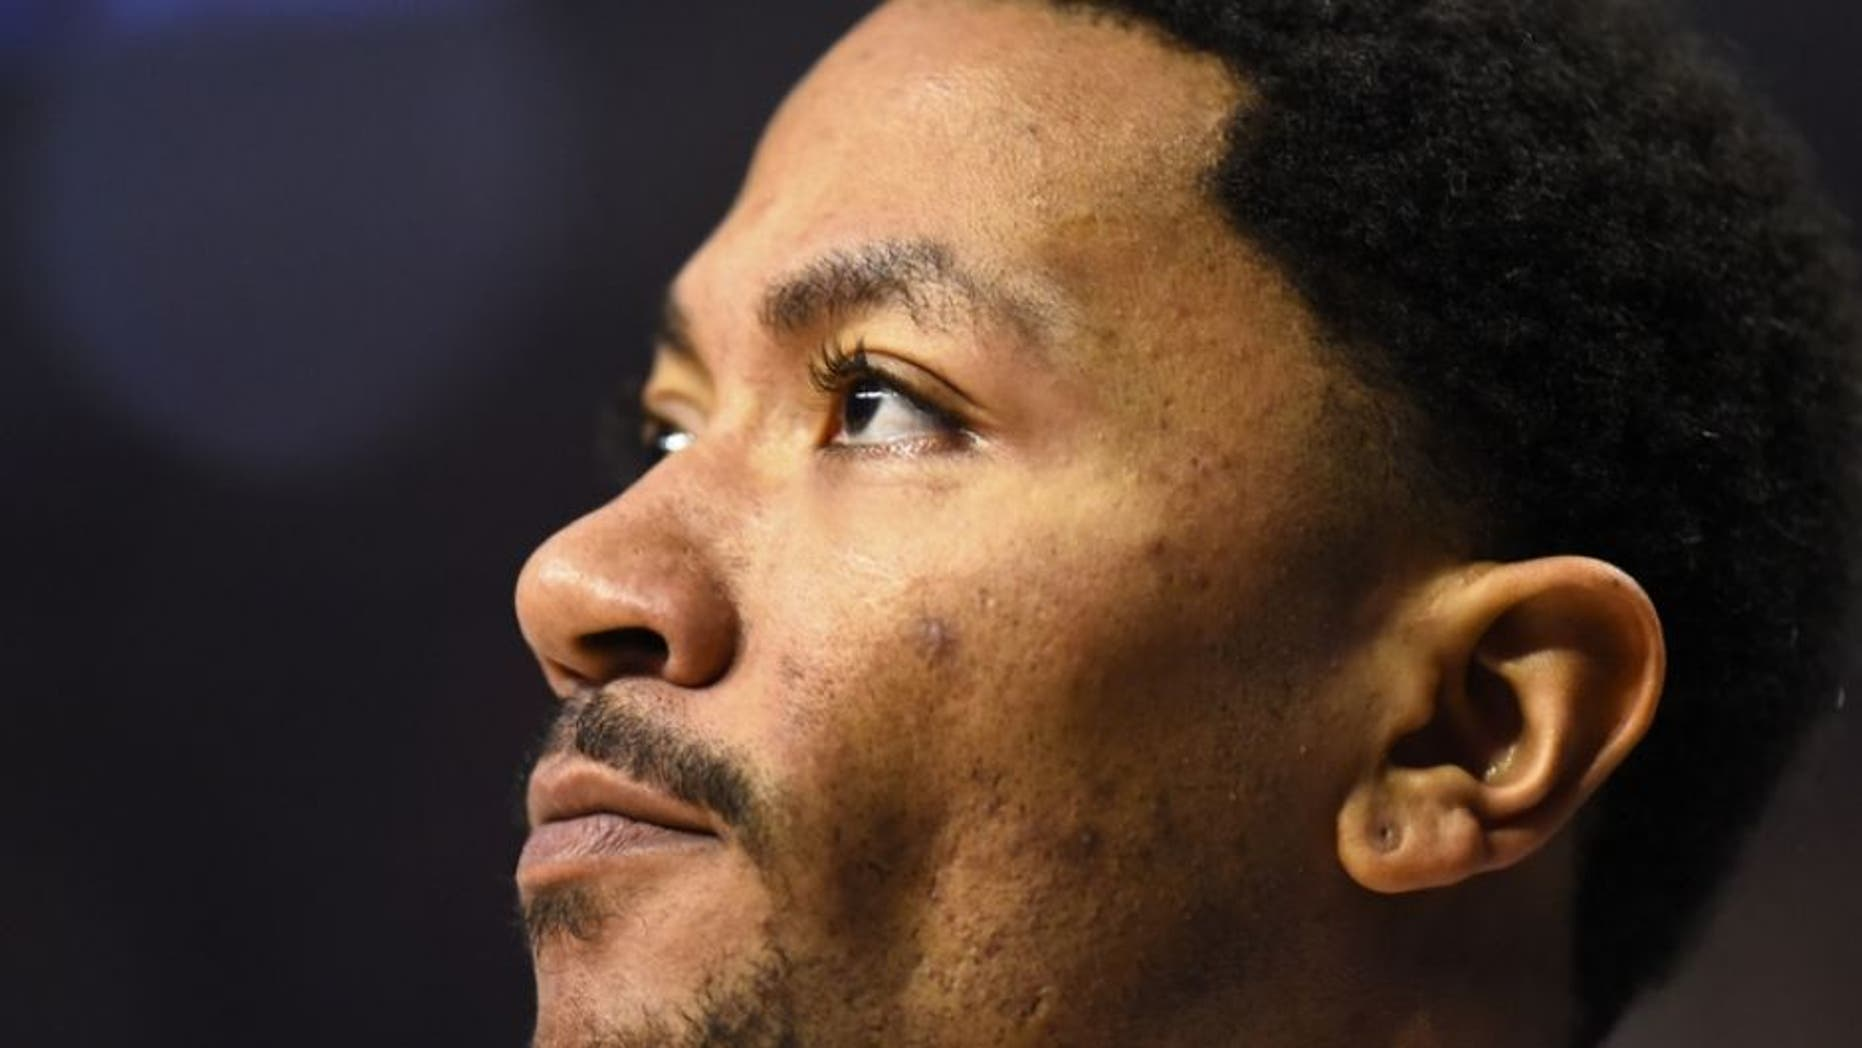 Mar 23, 2016; Chicago, IL, USA; Chicago Bulls guard Derrick Rose (1) looks on during the first half against the New York Knicks at the United Center. Mandatory Credit: Mike DiNovo-USA TODAY Sports